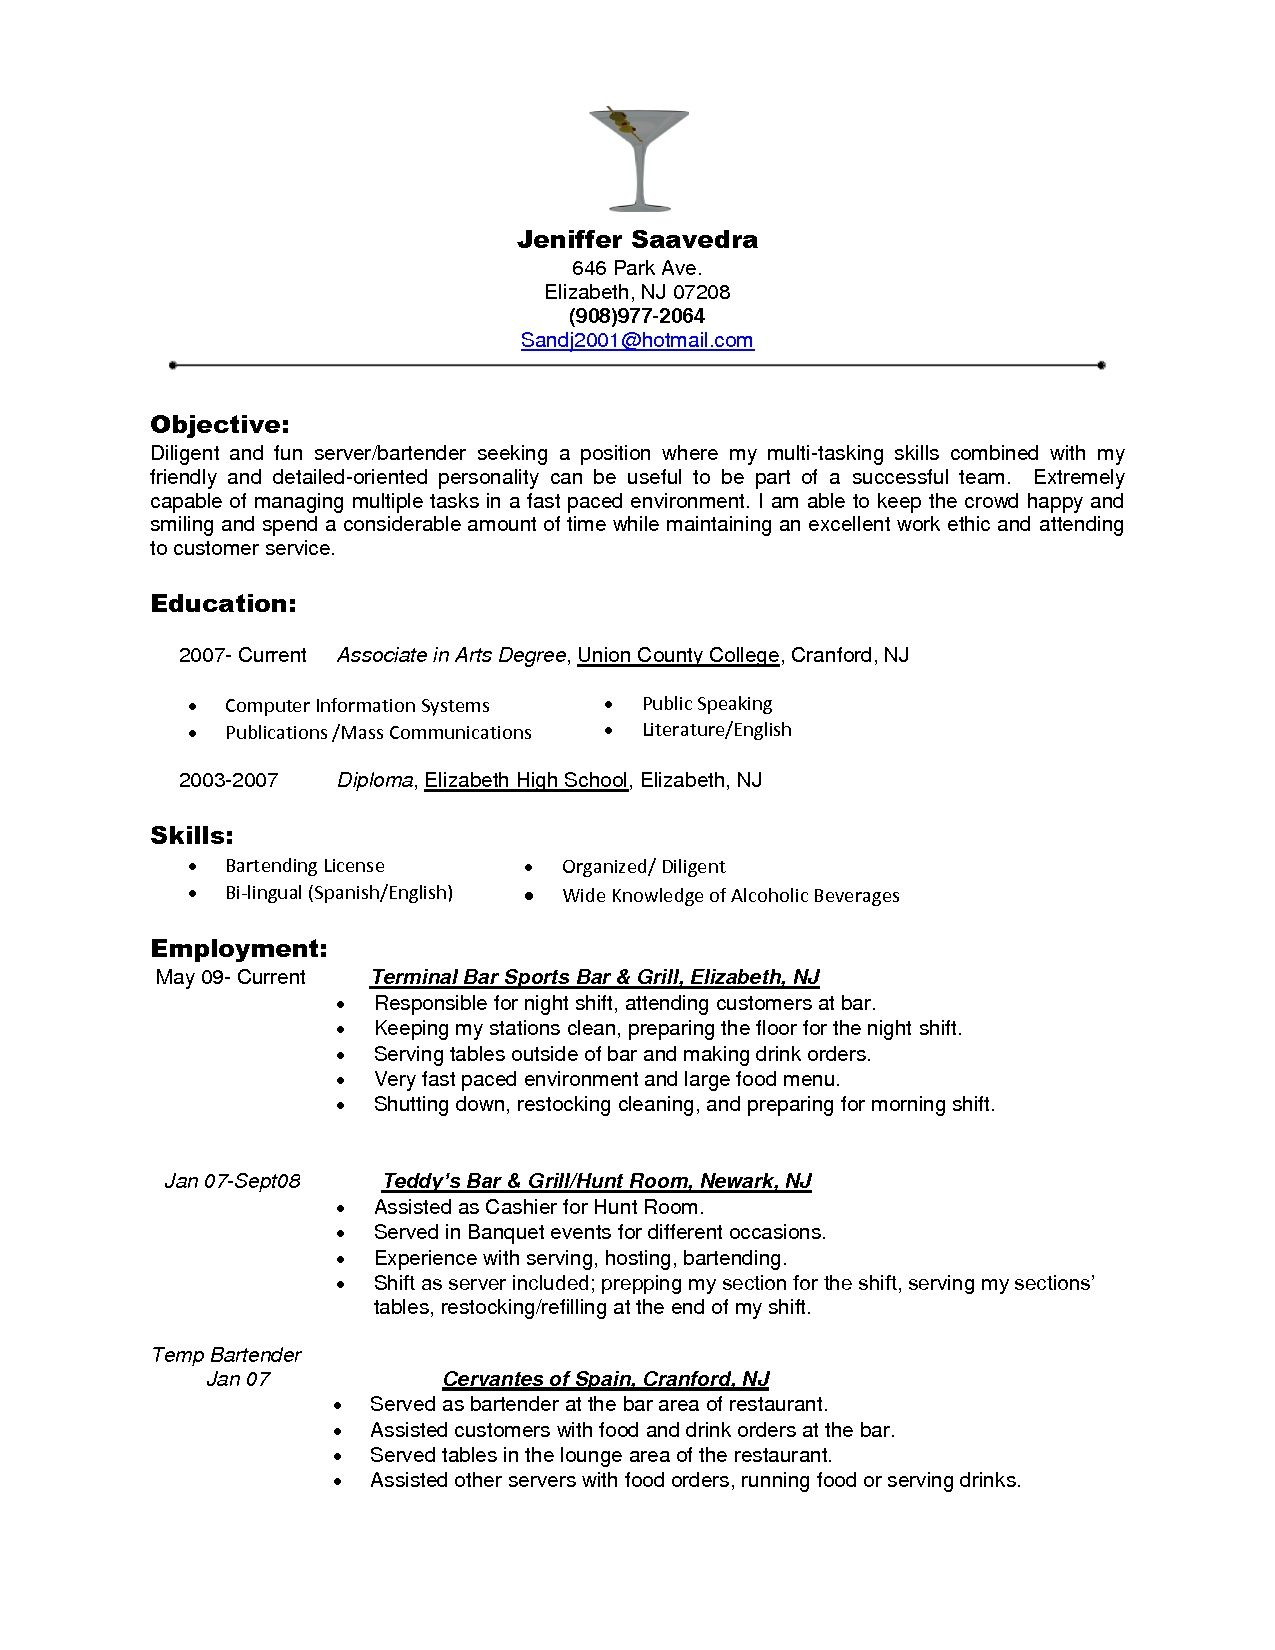 Bartender Objectives Resume - Bartender Objectives Resume will give ...